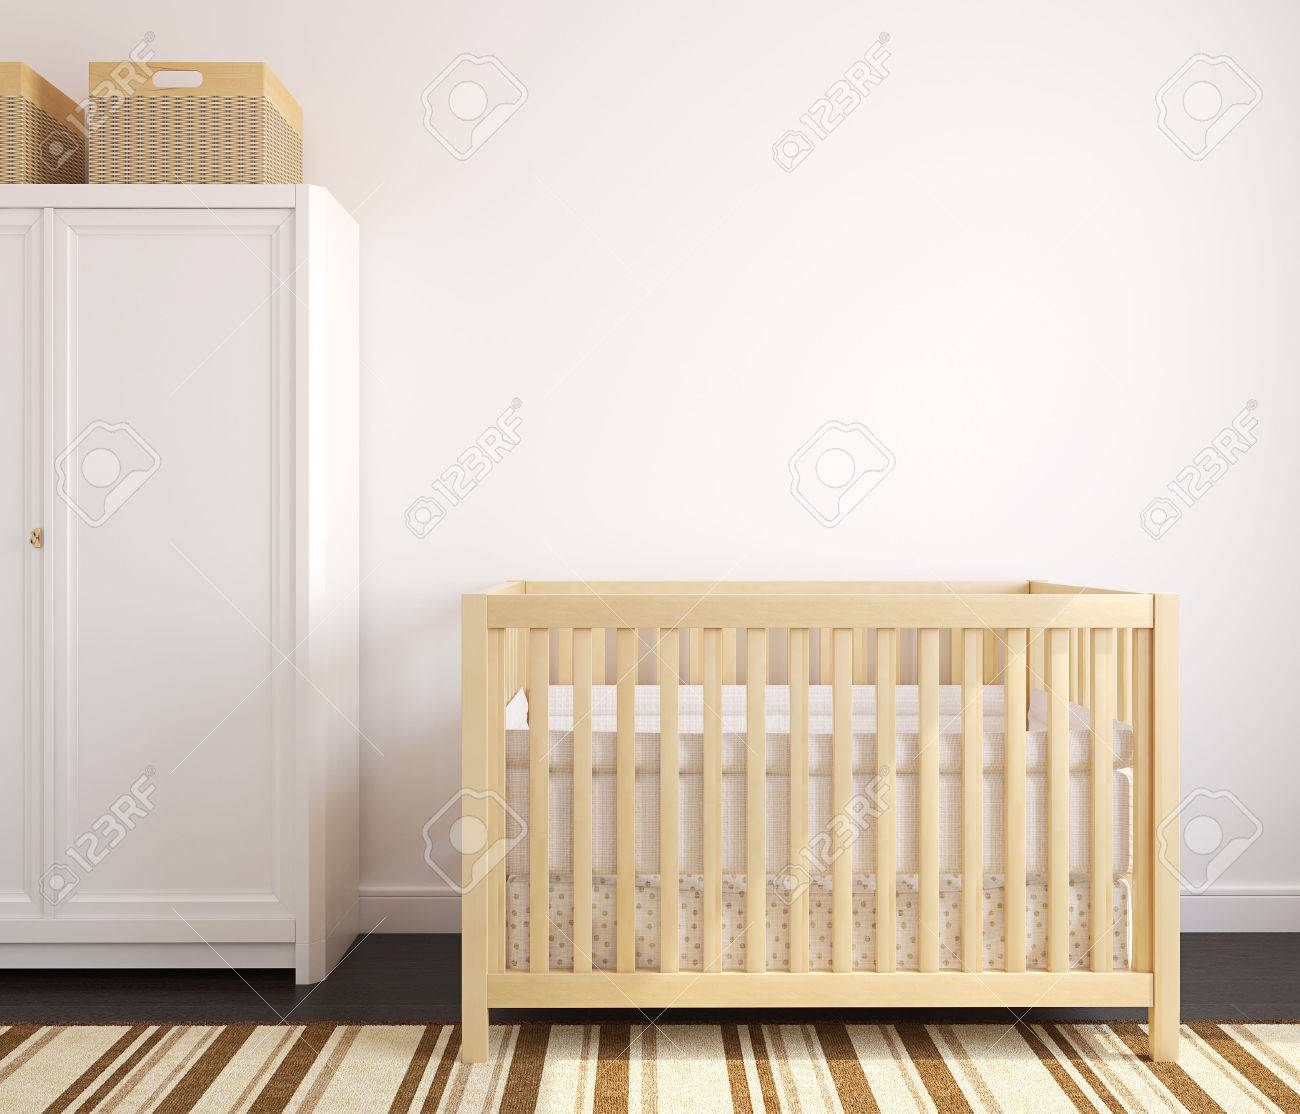 Cozy interior of nursery with wooden crib. Frontal view. 3d render. - 44828005